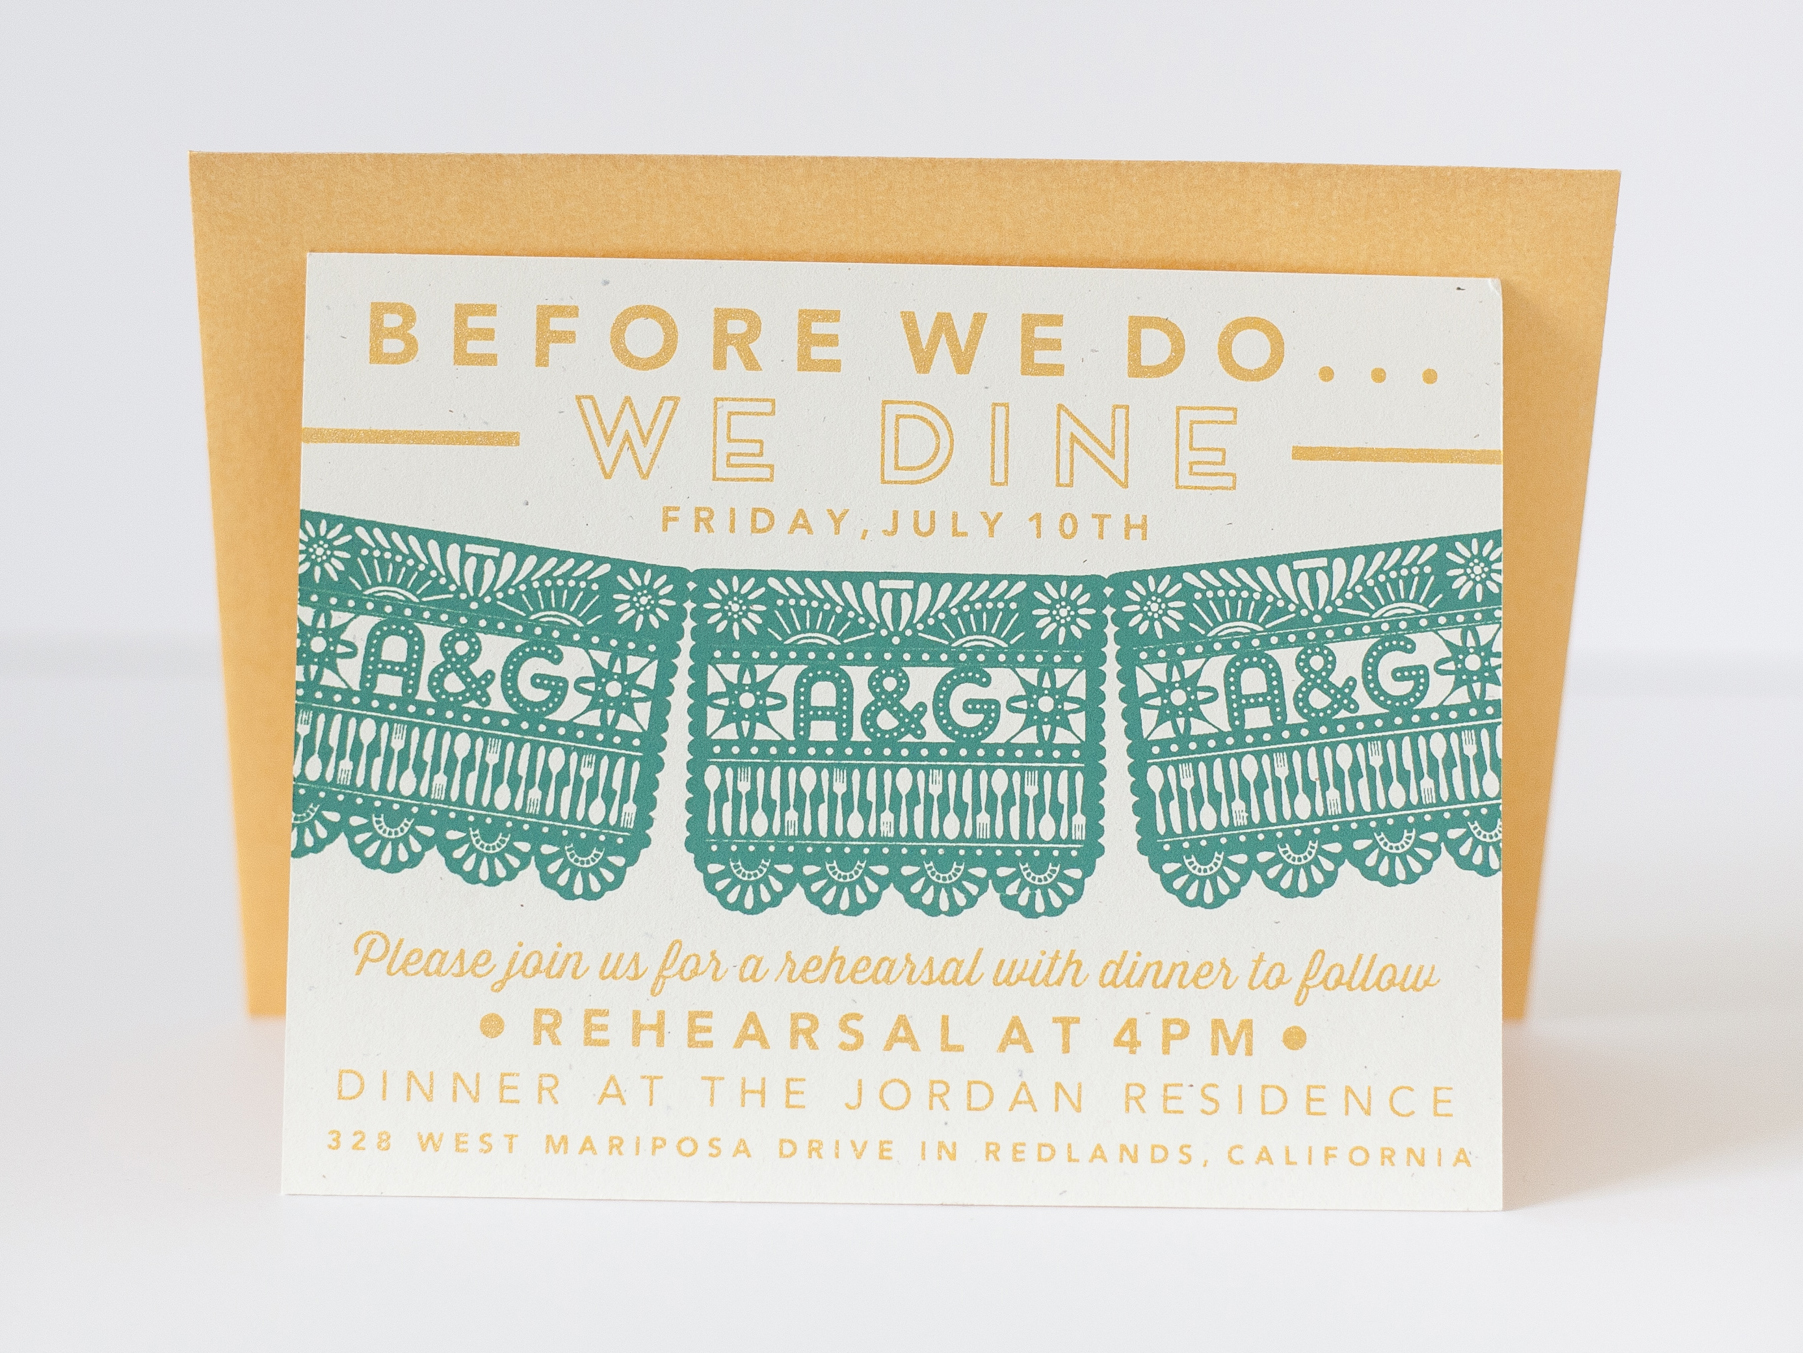 the couple had a catered Mexican rehearsal dinner and used papel picado as decor for the day of.